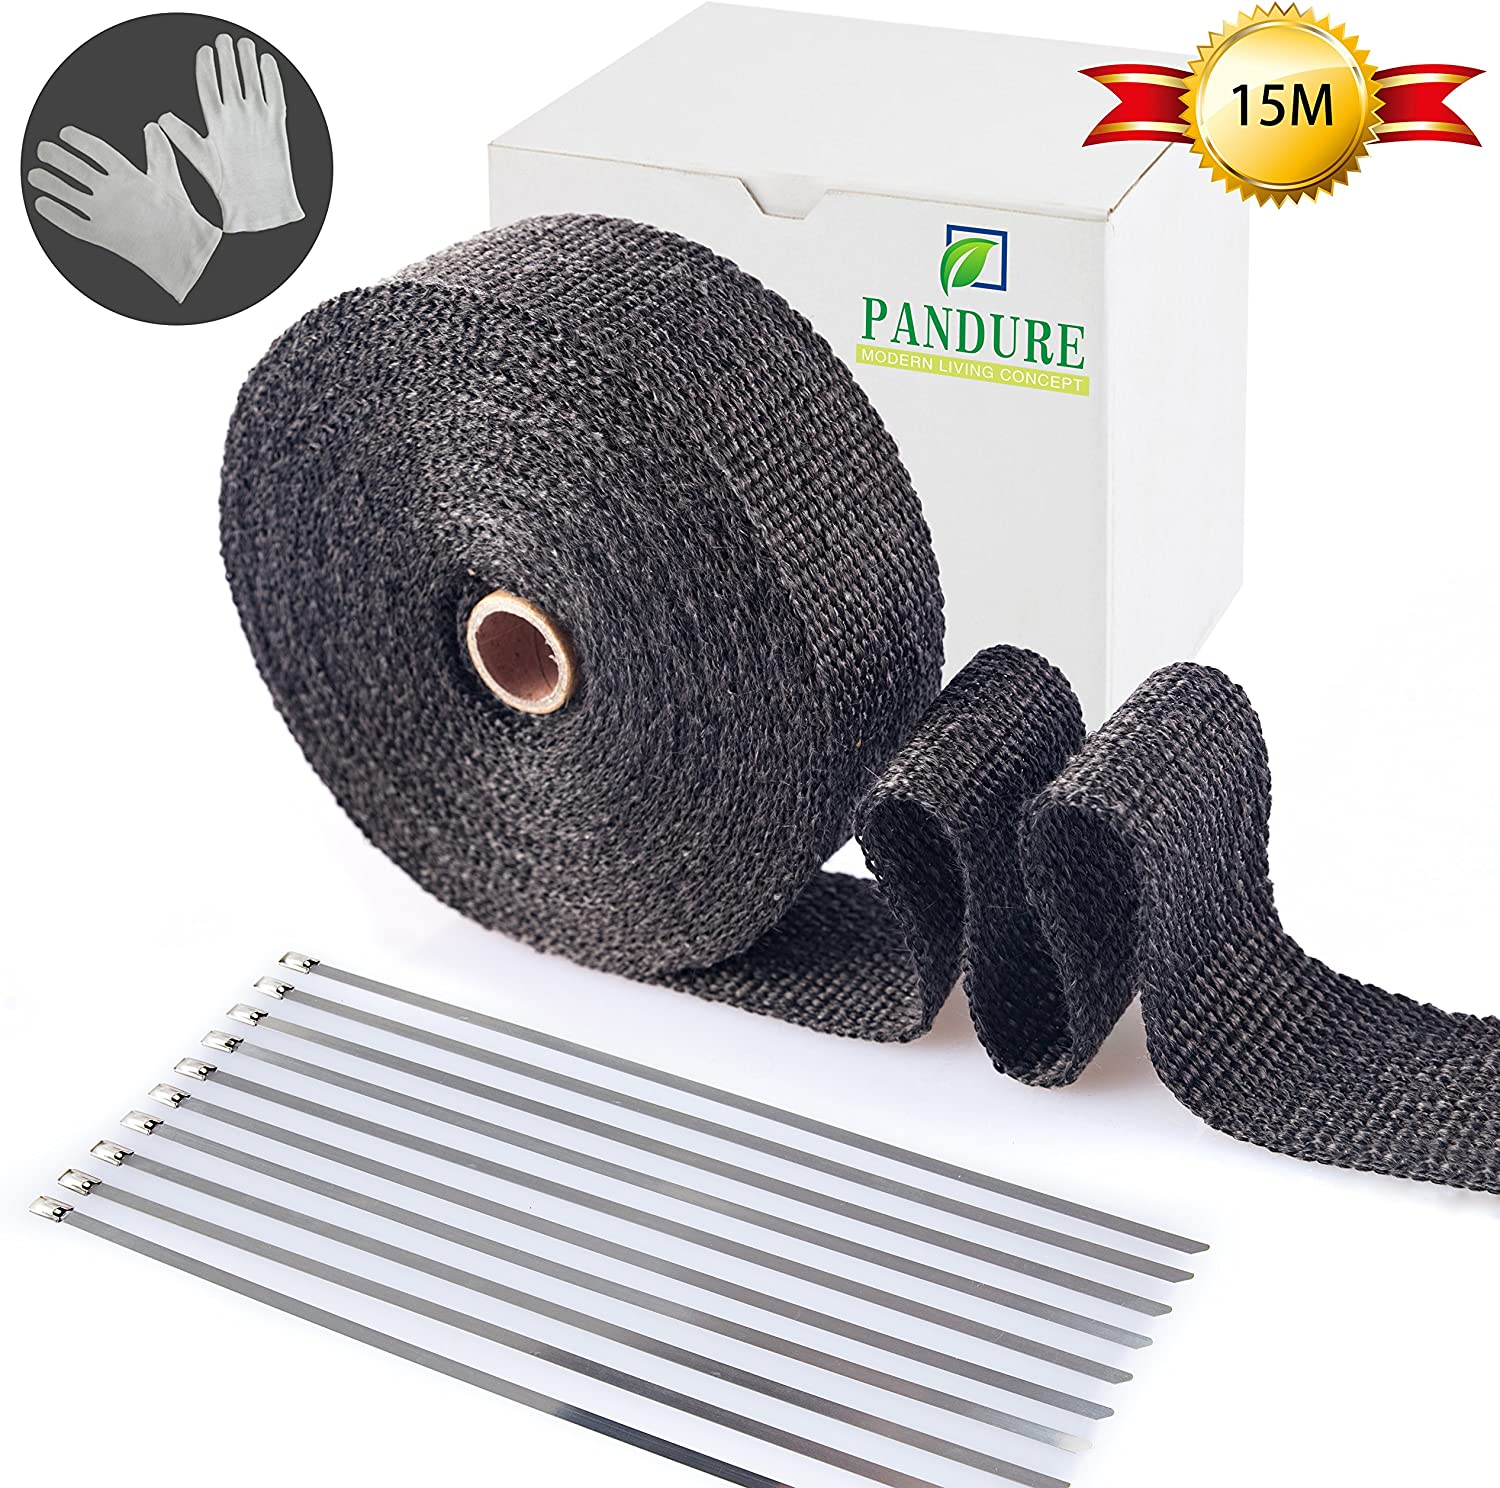 5CM X 5M Titanium Lava Exhaust Header Pipe Heat Wrap Stainless Ties Kit Car